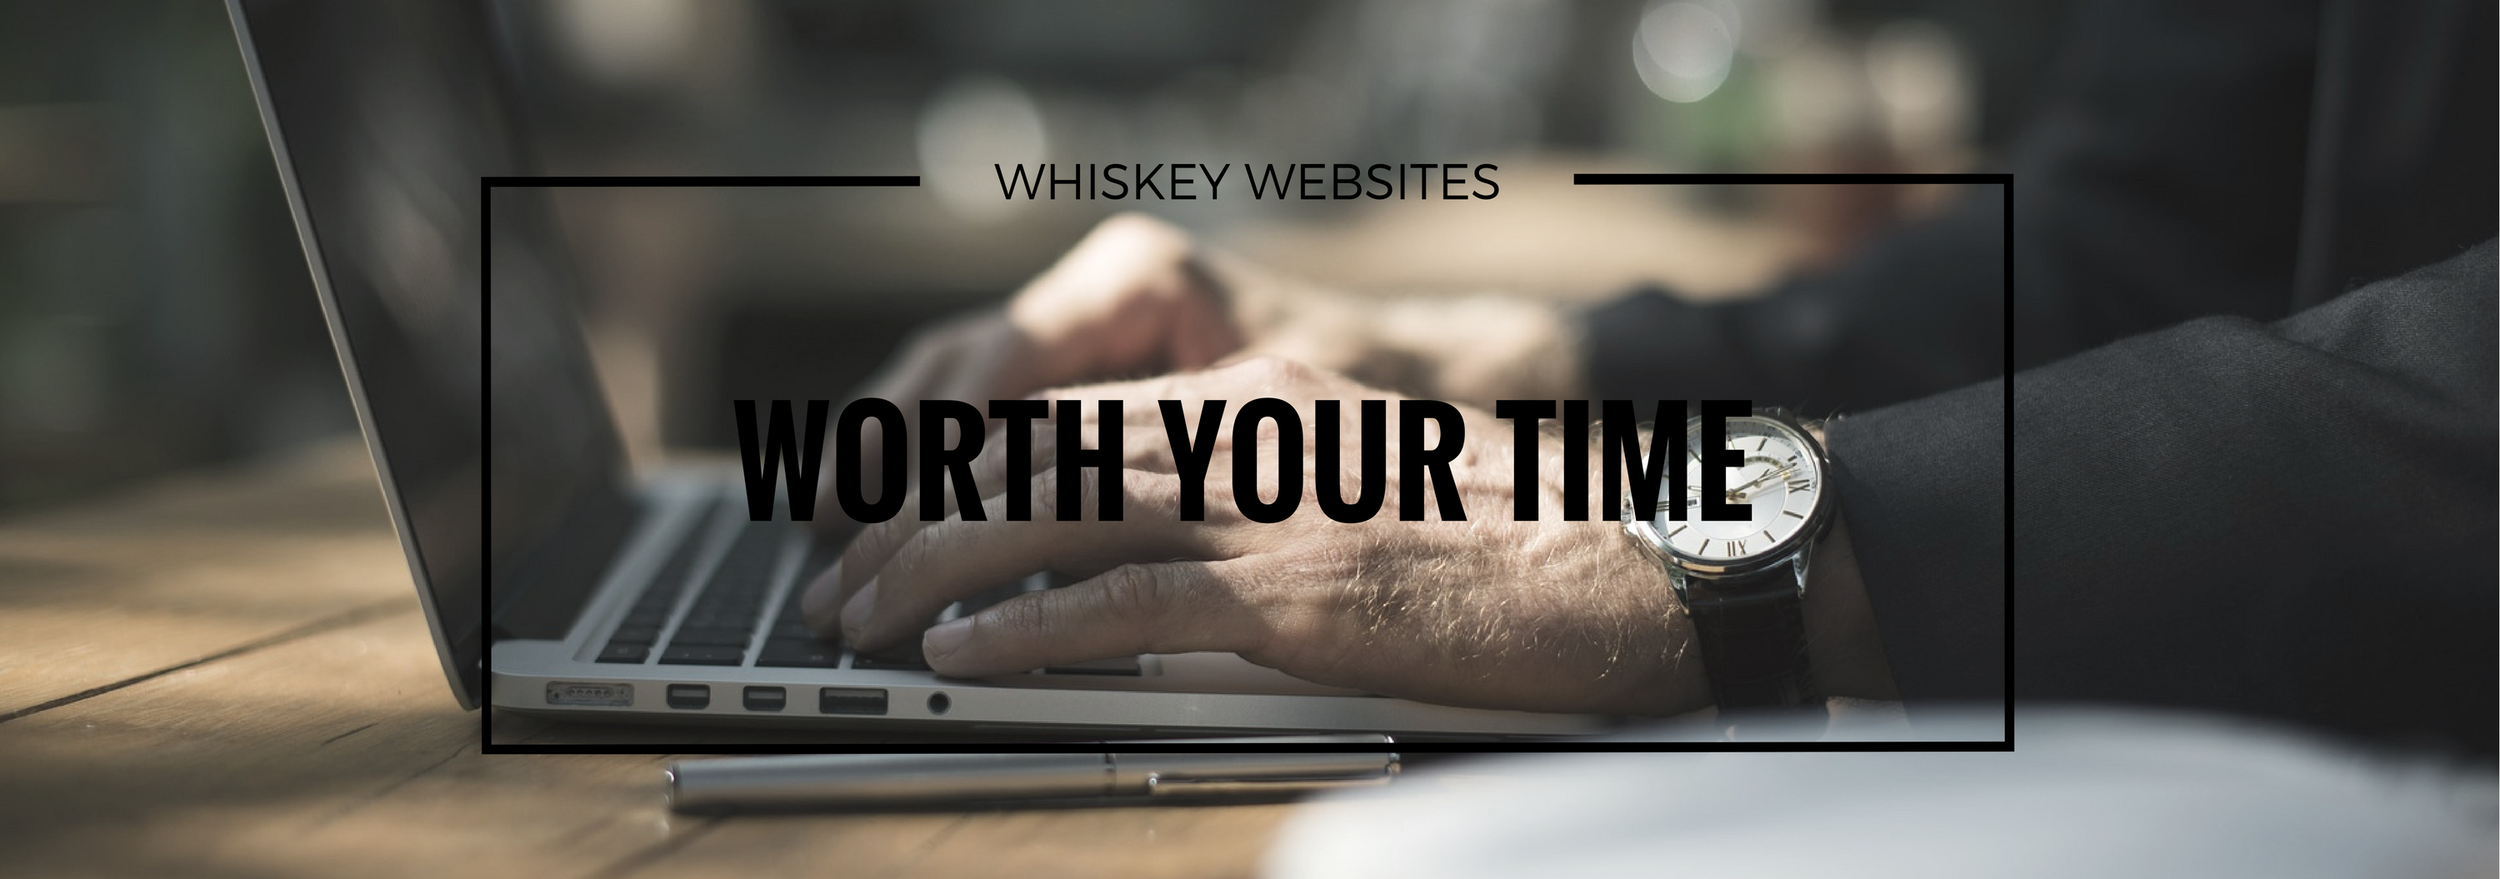 whiskey-websites-worth-your-time.png